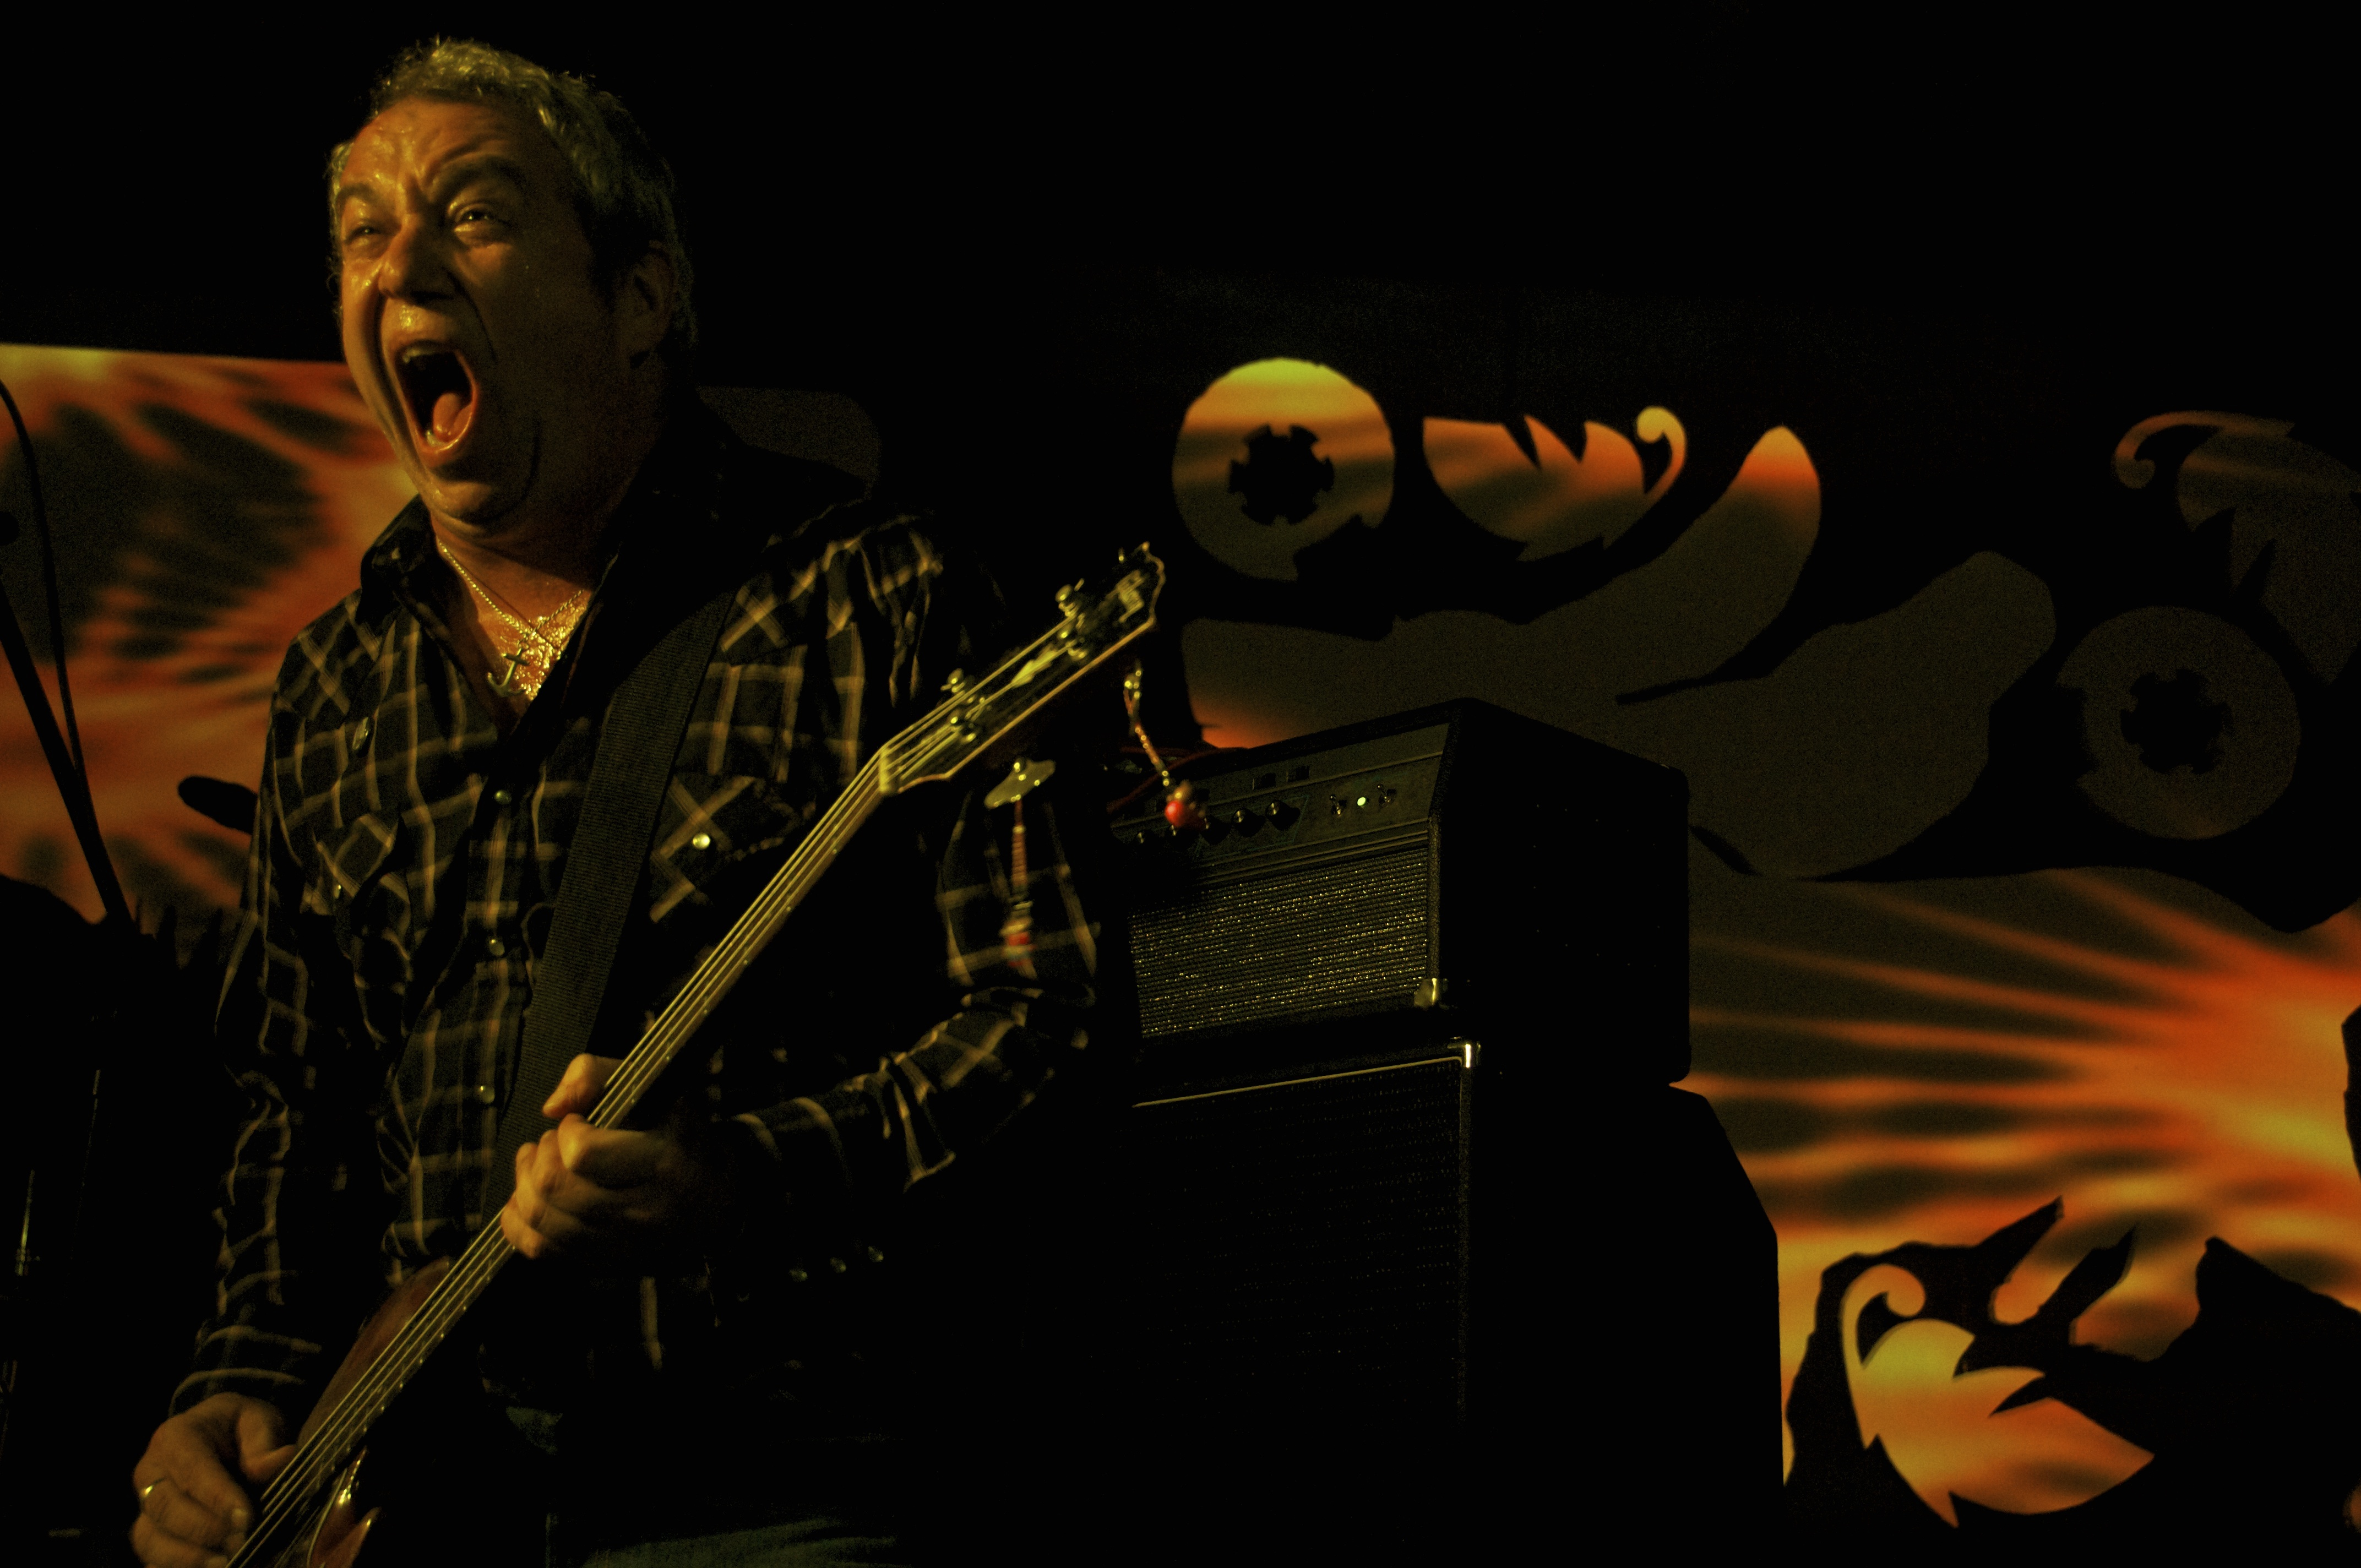 Mike Watt & the Missingmen at Supersonic(2)